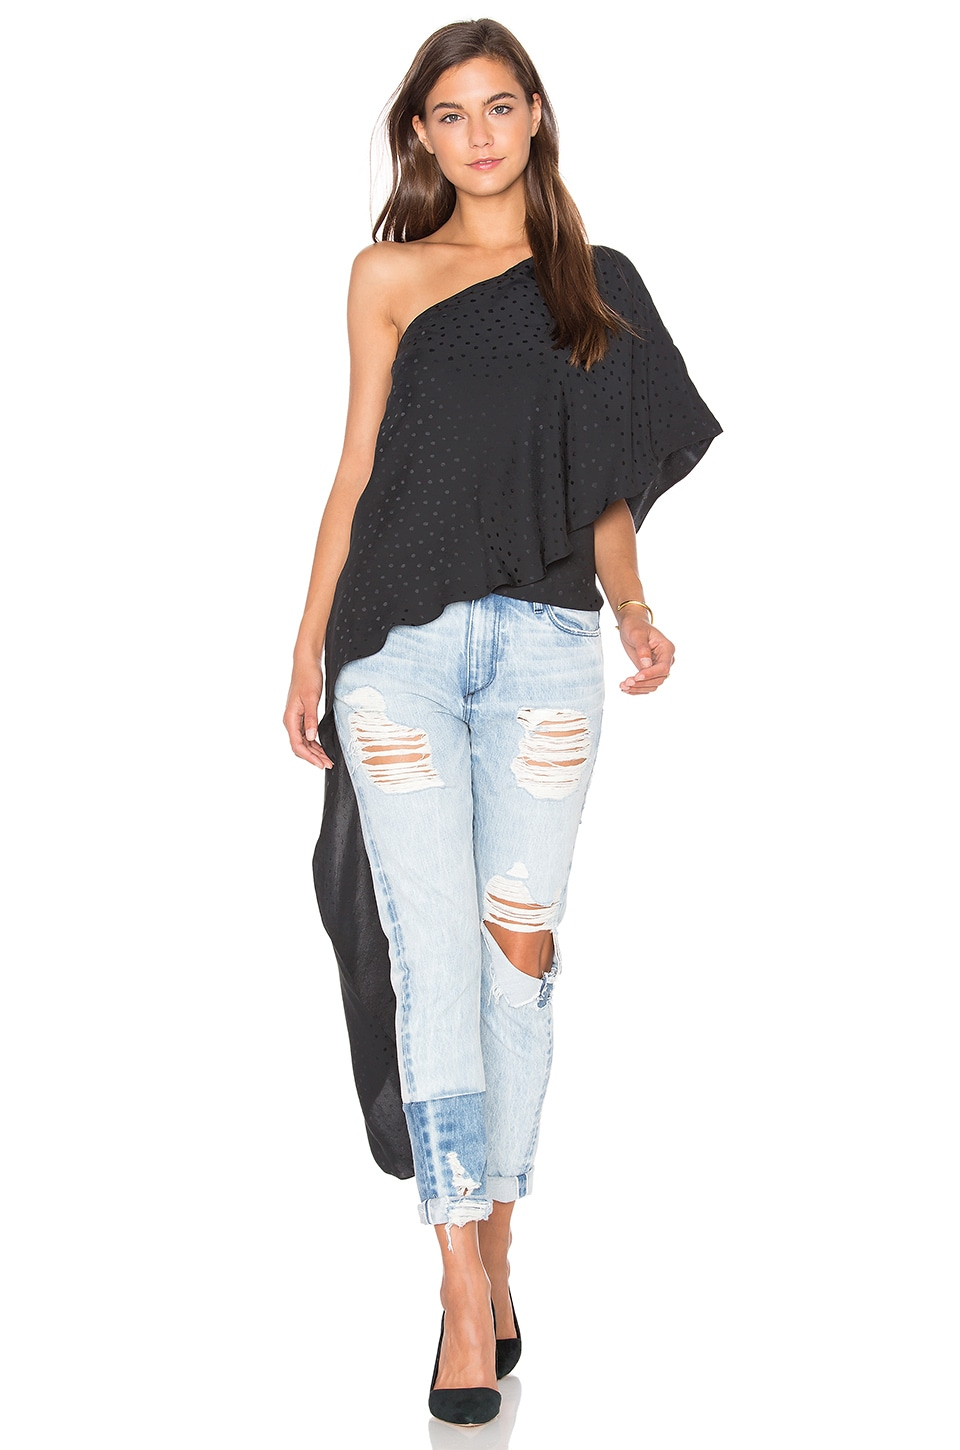 The Solea One Shoulder Top by TY-LR